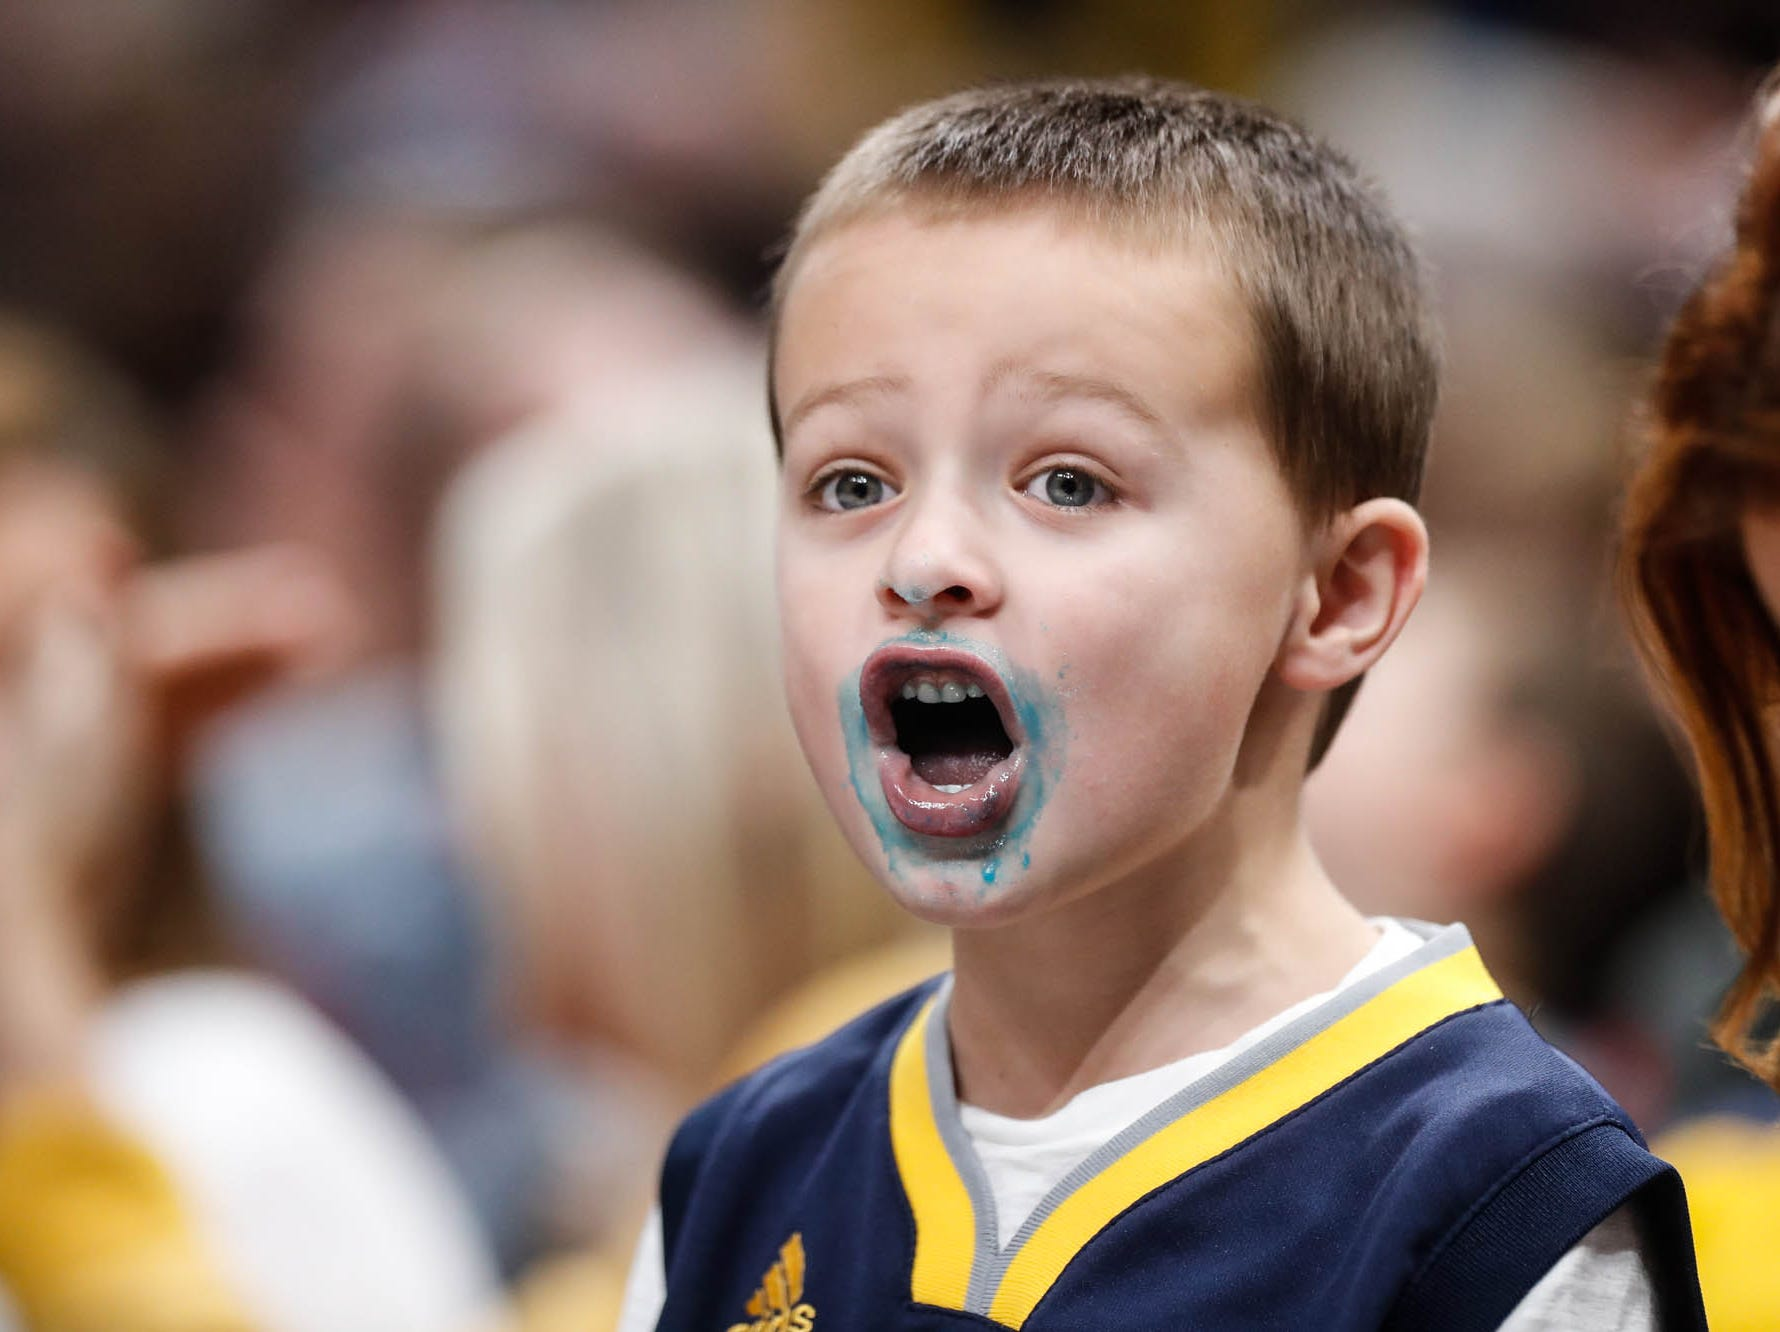 Fan Mason Ward cheers on the Pacers while eating cotton candy during a game between the Indiana Pacers and the Detroit Pistons at at Bankers Life Fieldhouse in Indianapolis on Friday, Dec. 28, 2018.